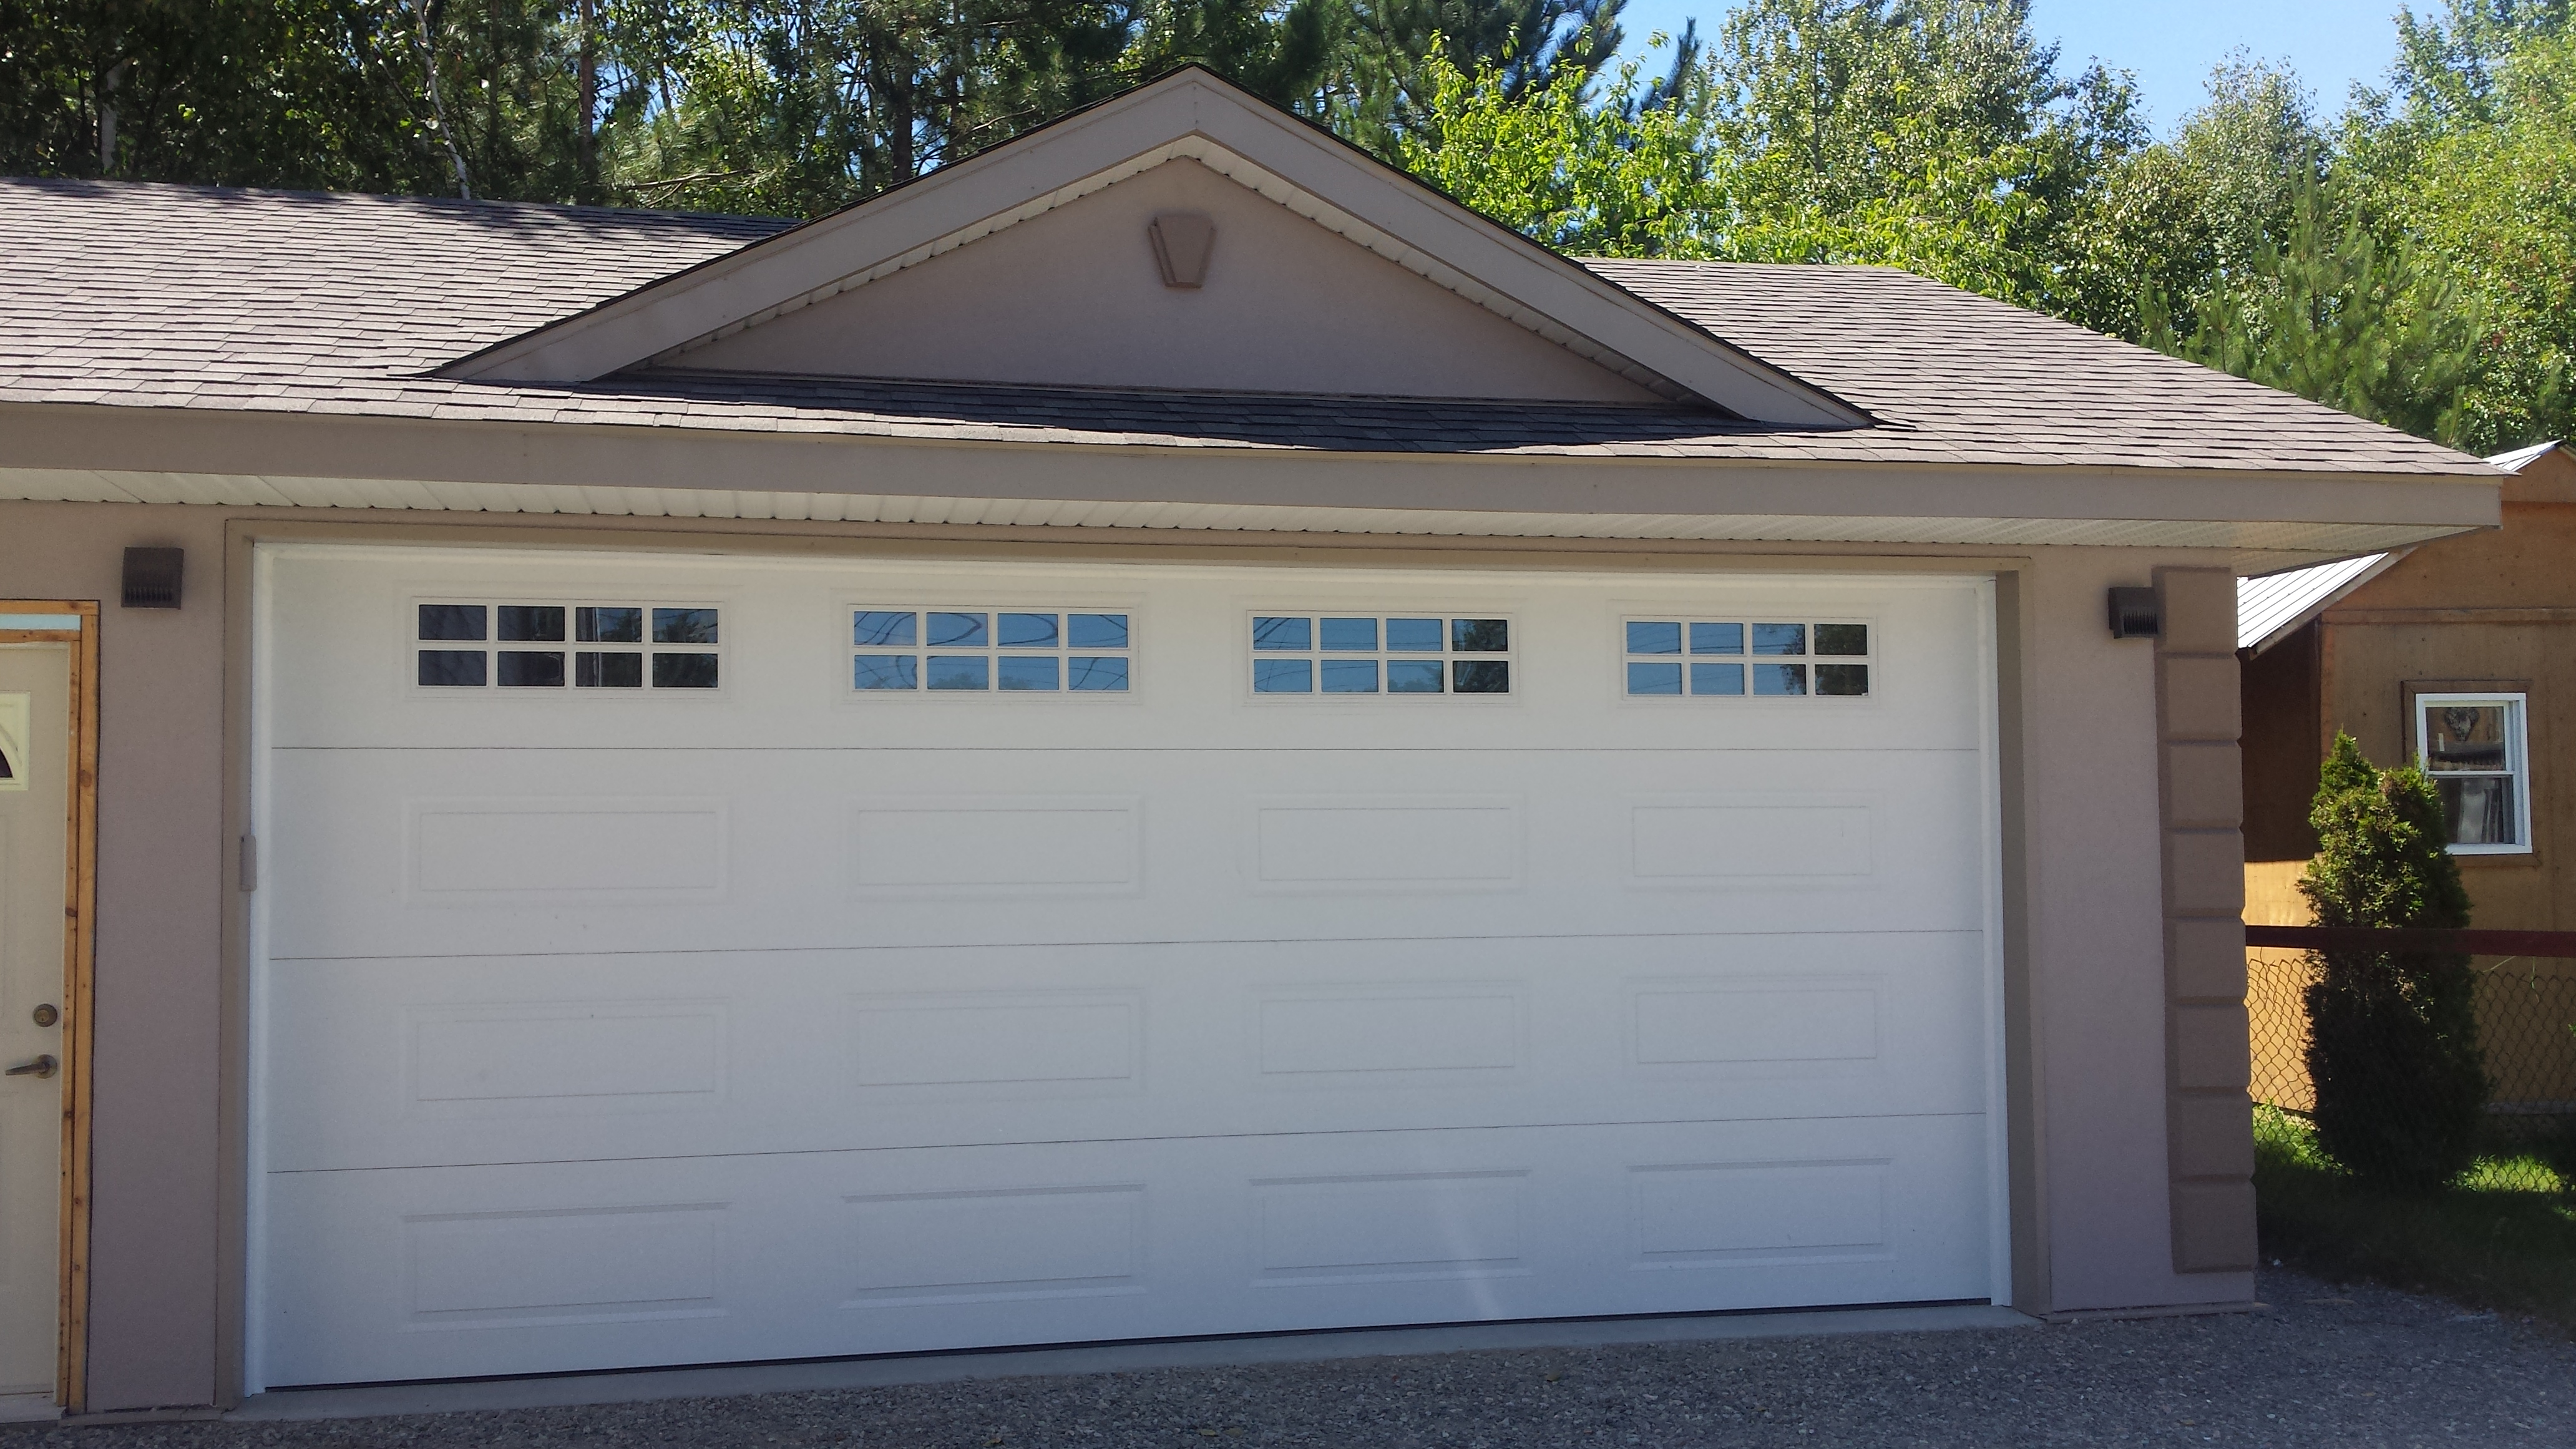 magicbrush magic a our new garage brush doors the makeover